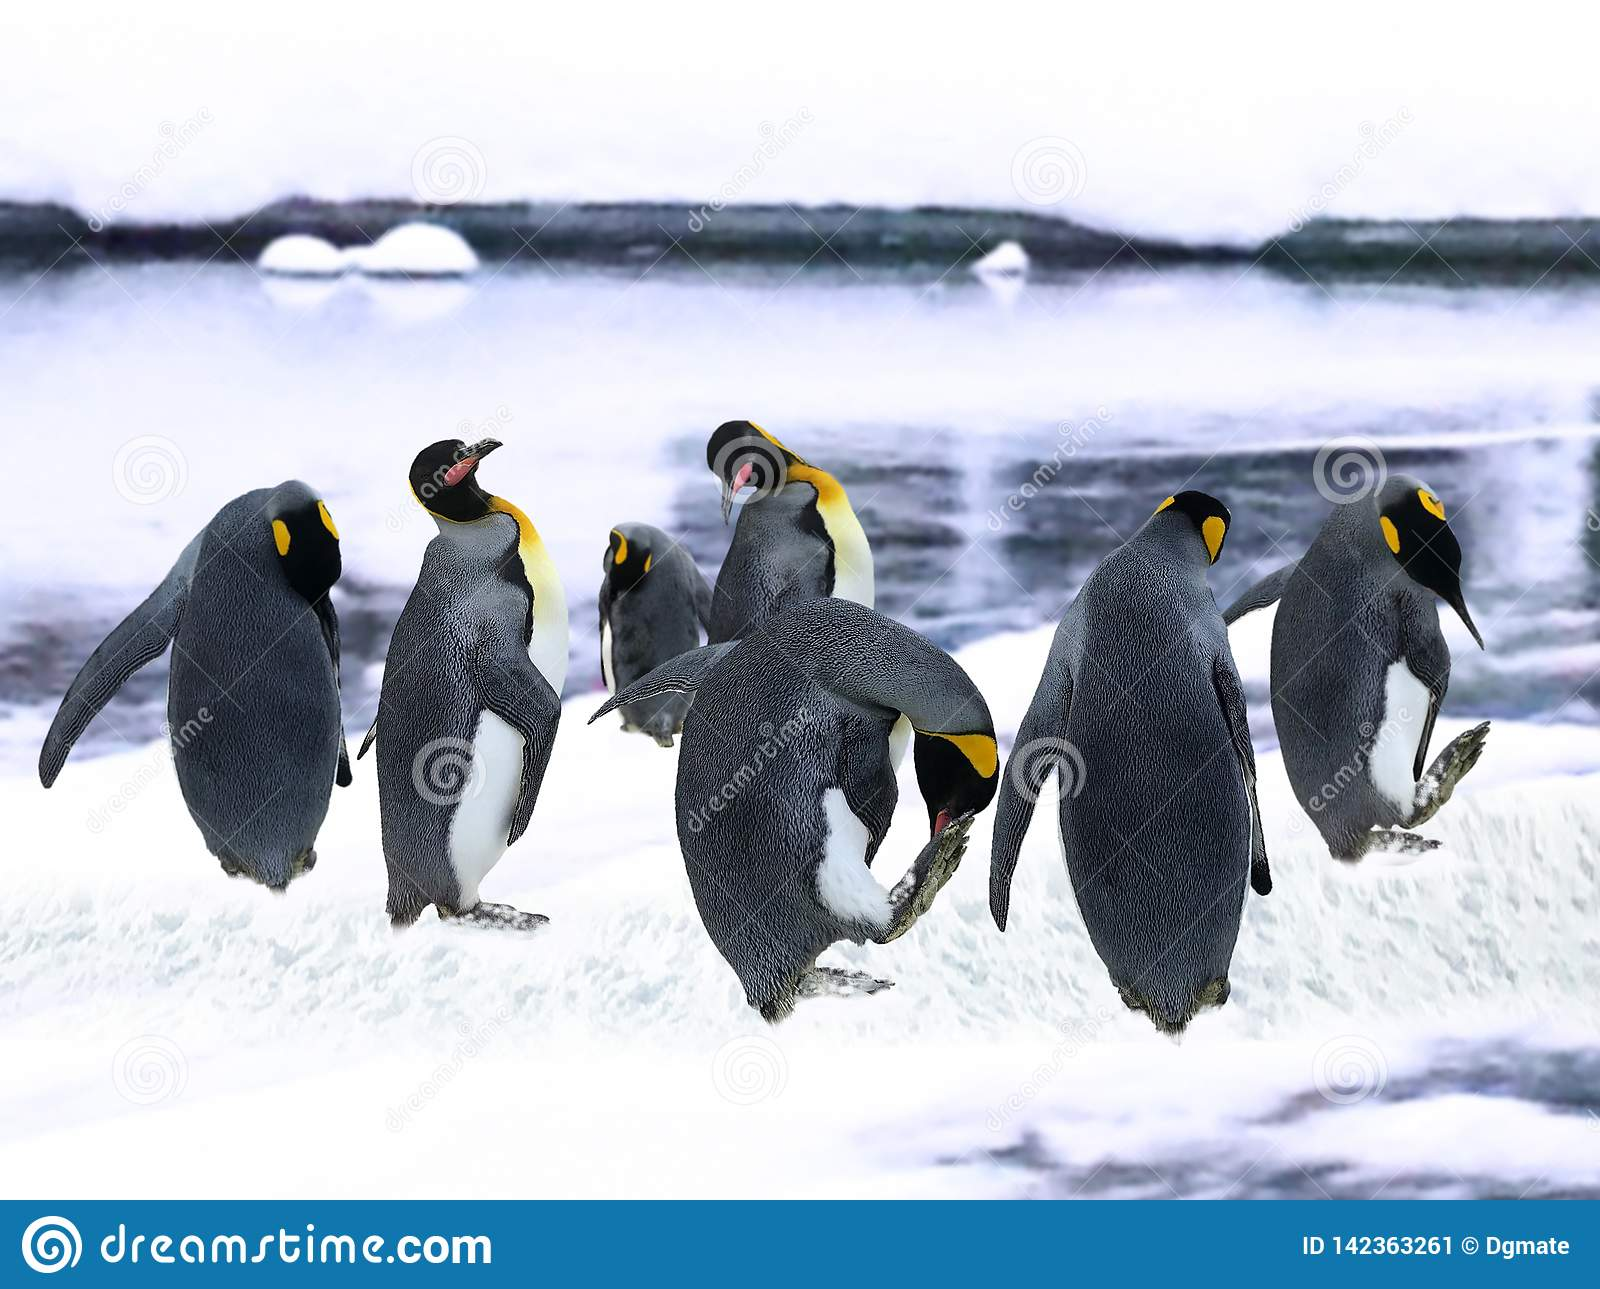 Emperor Penguins in the snow